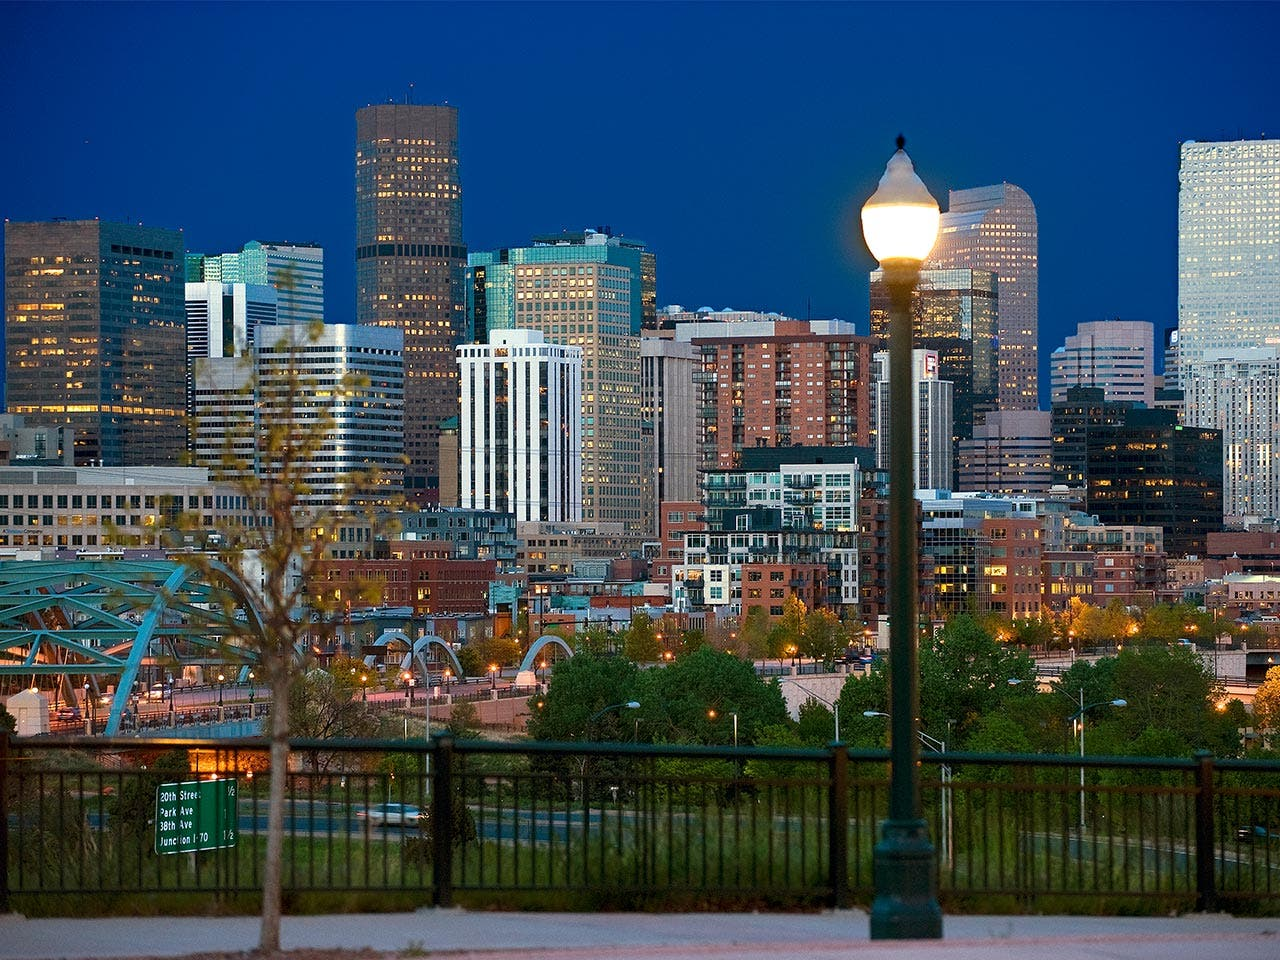 City skyline at night in Colorado